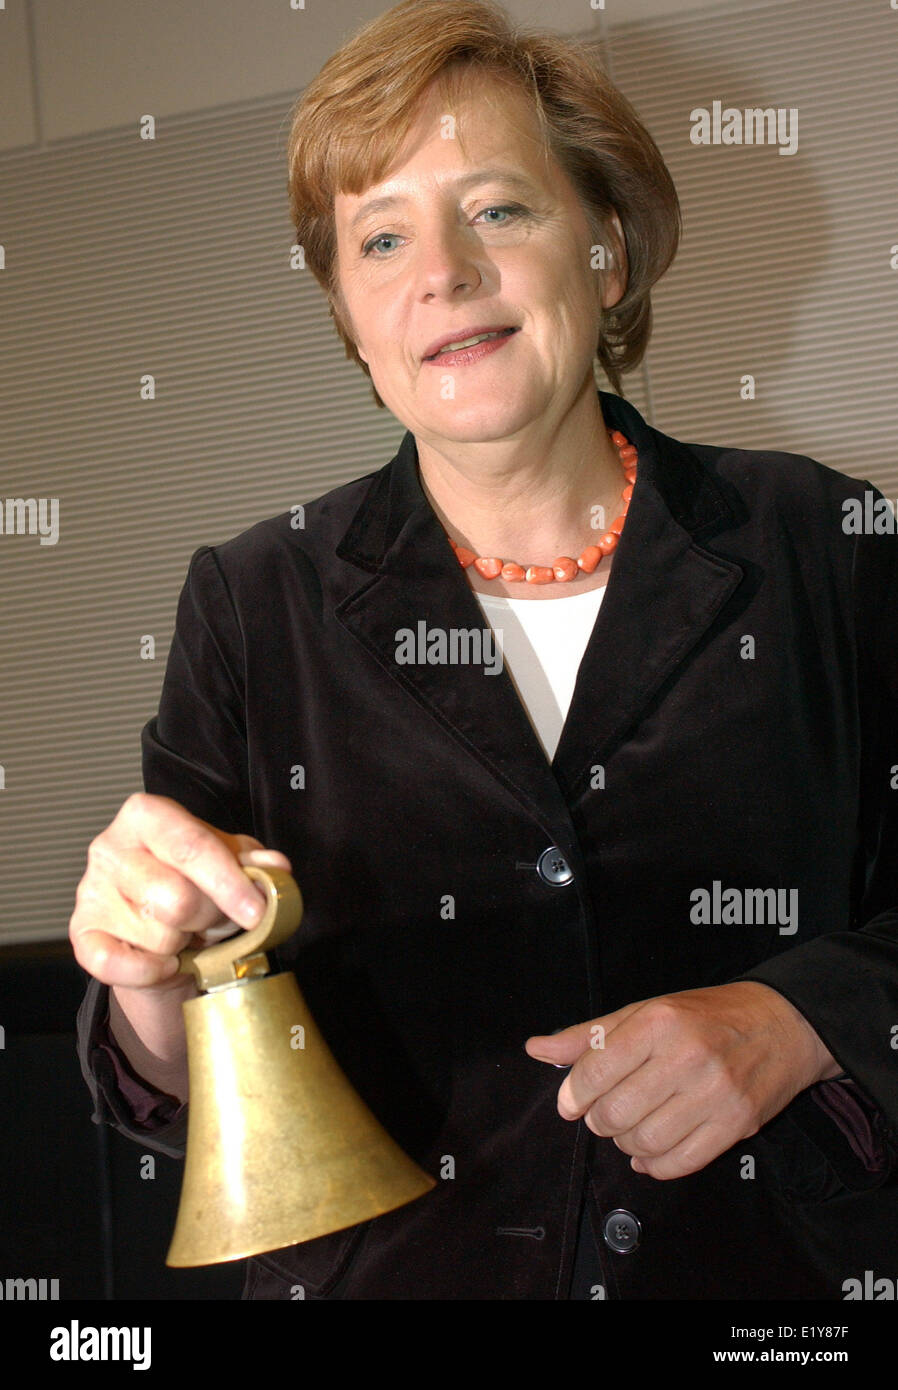 Chancellor Angela Merkel  rings the bell to mark the beginning of the CDU parliamentary party meeting in Berlin - Stock Image